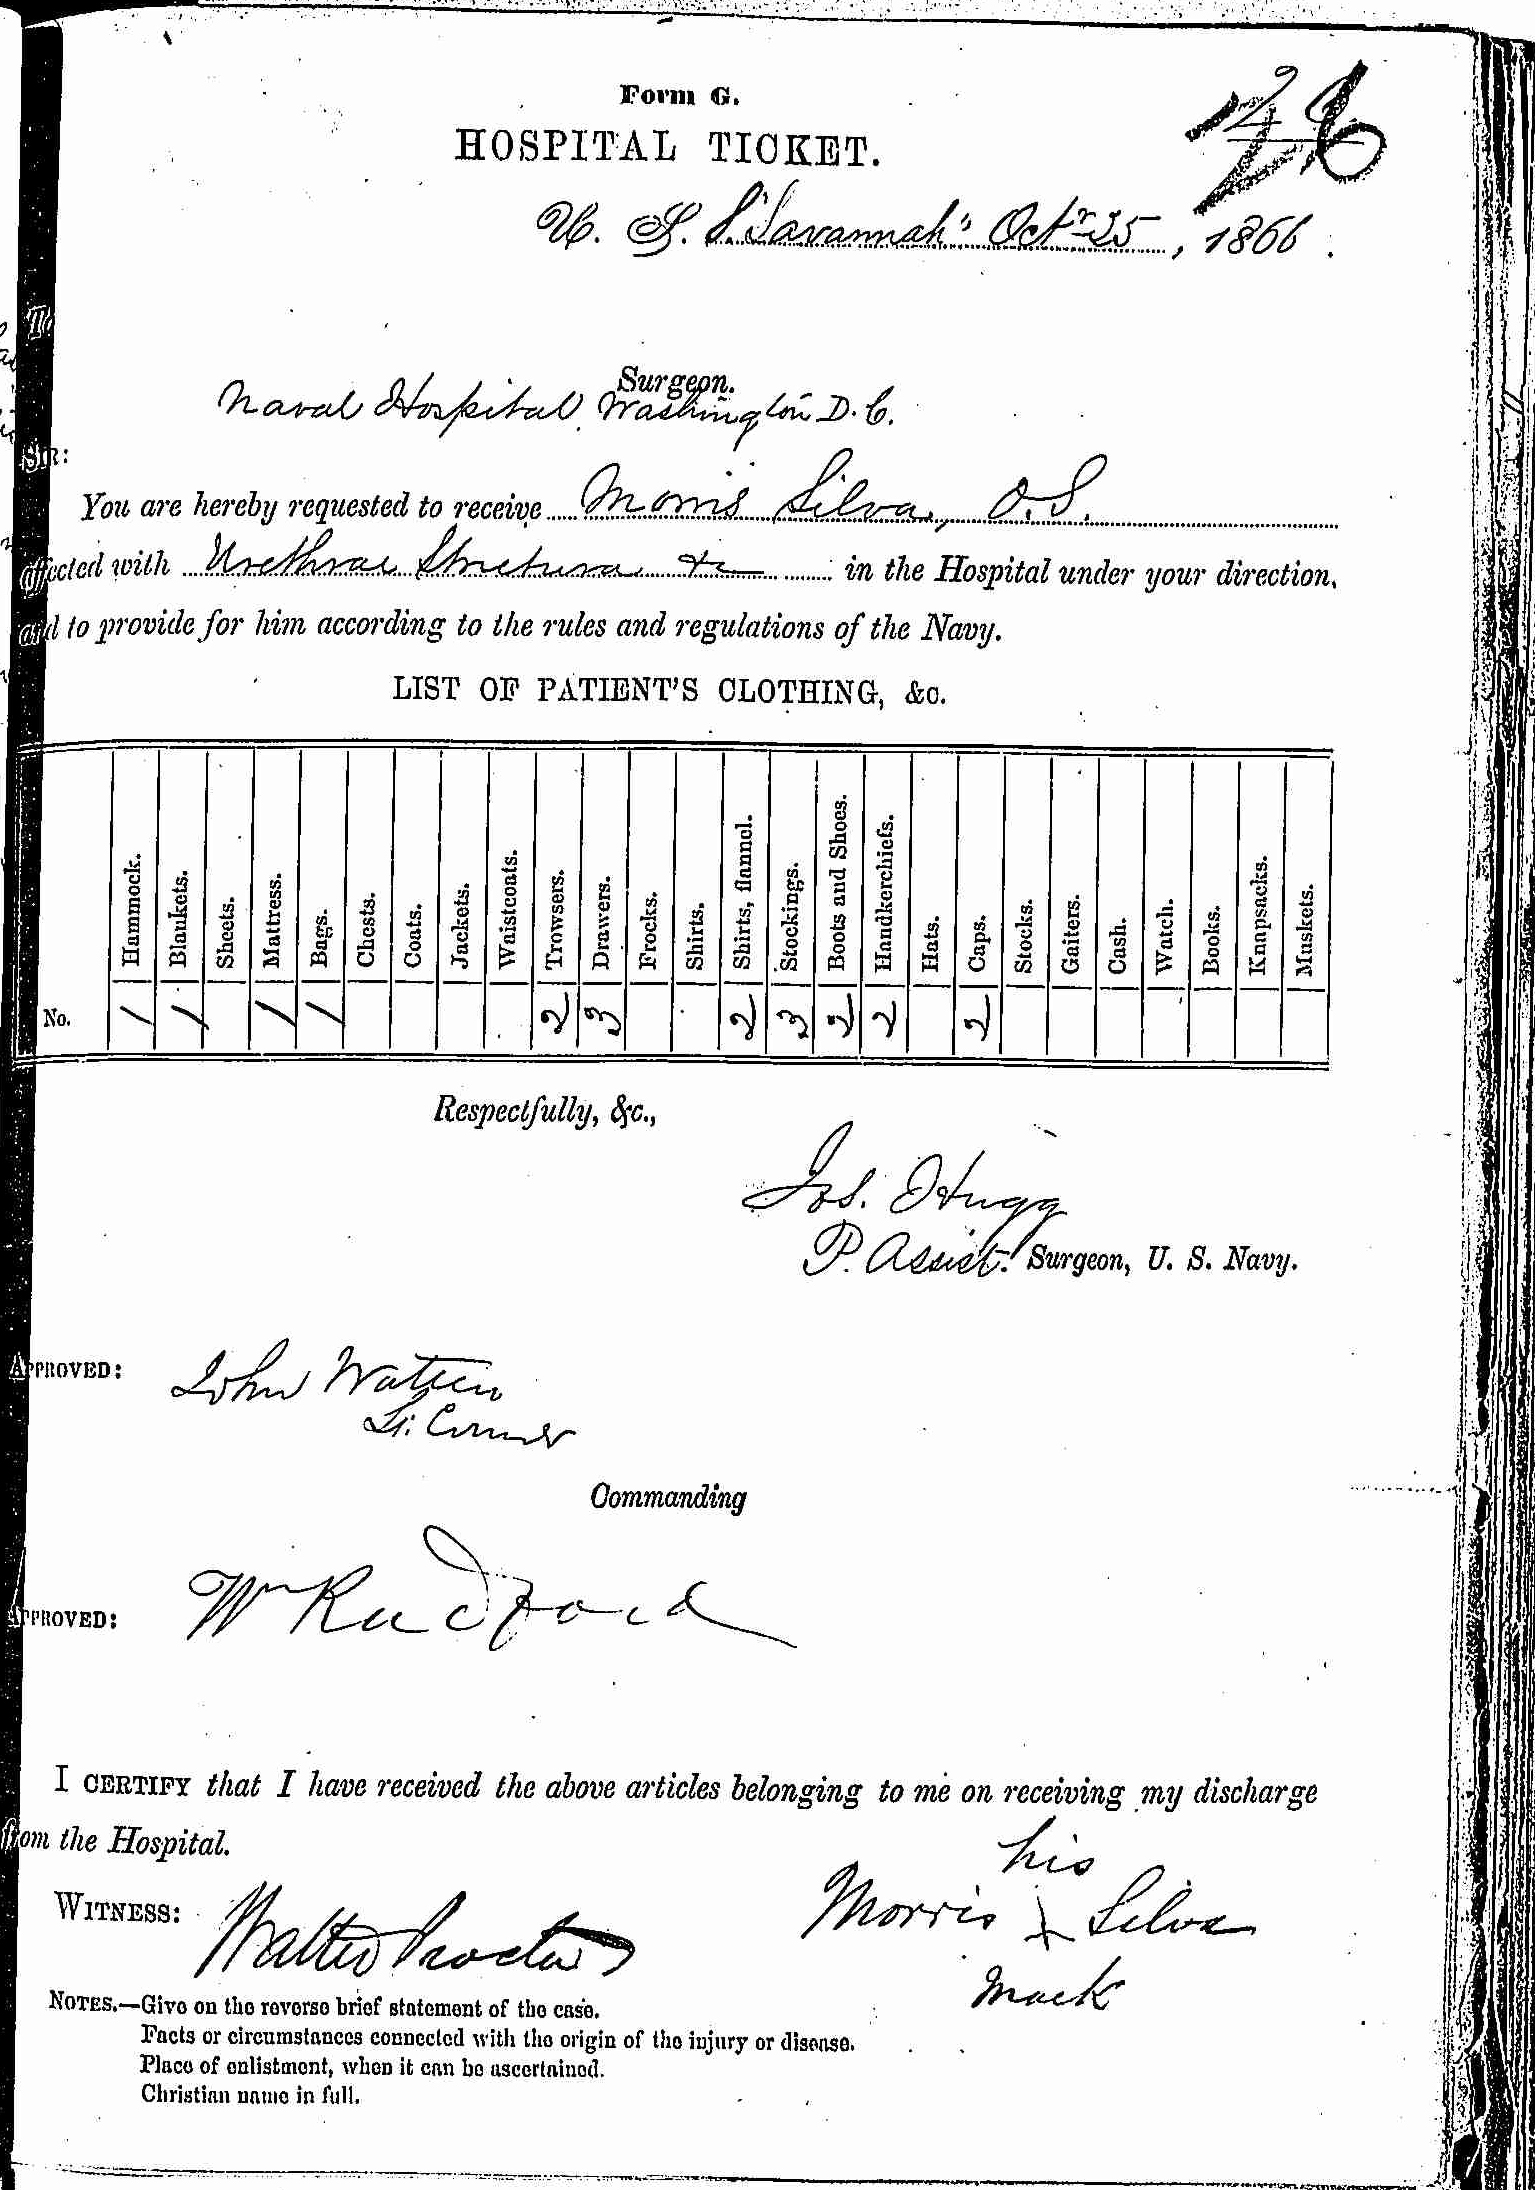 Entry for Morris Silva (page 1 of 2) in the log Hospital Tickets and Case Papers - Naval Hospital - Washington, D.C. - 1865-68